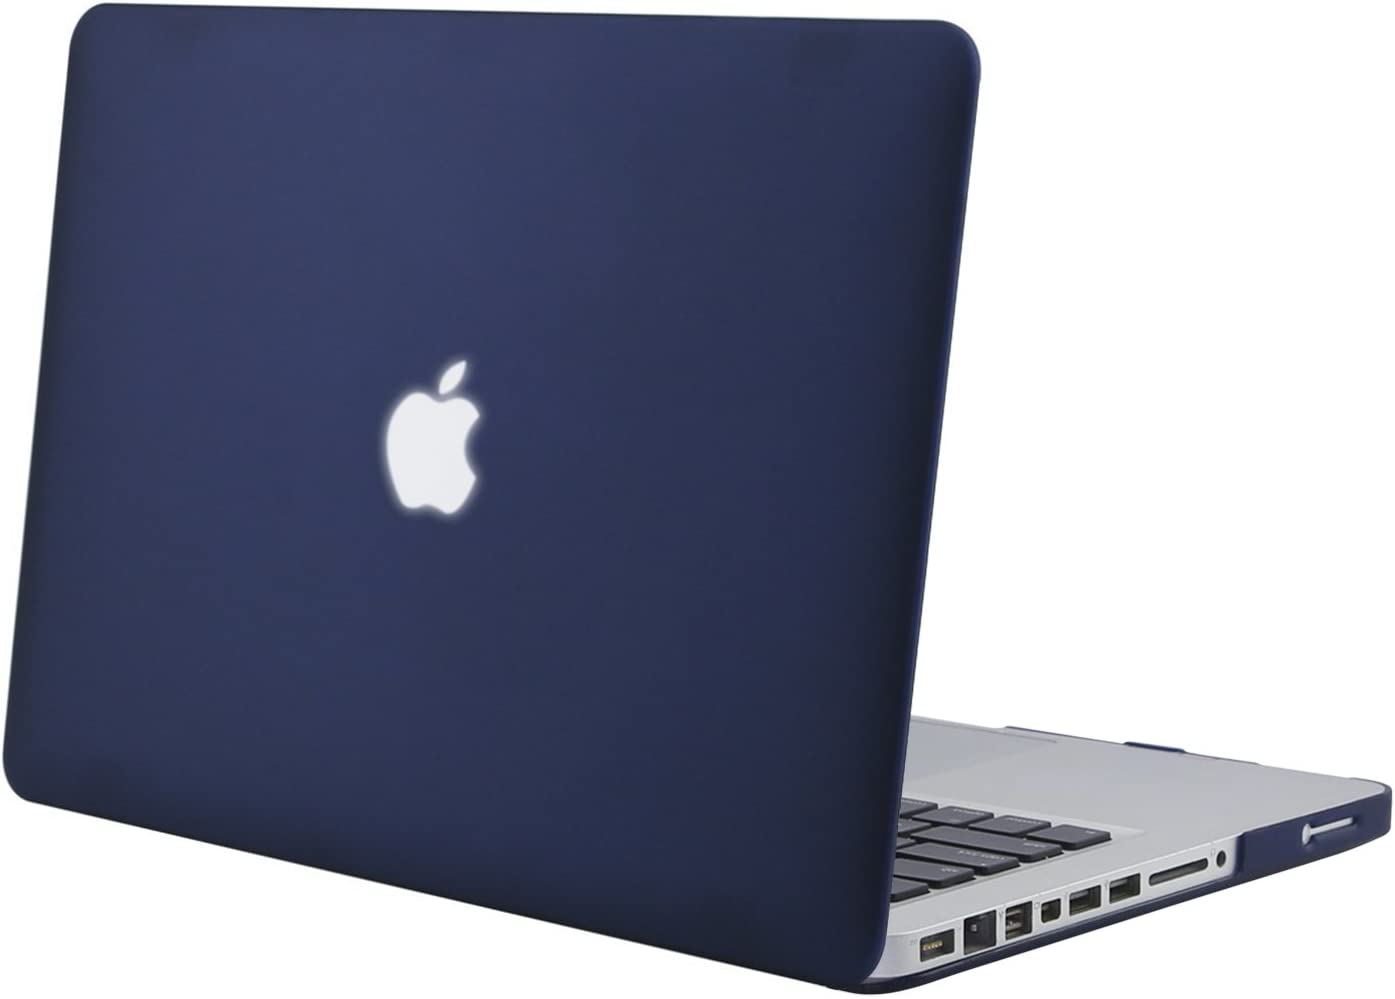 MOSISO Plastic Hard Shell Case Cover Only Compatible with Old Version MacBook Pro 13 Inch (Model: A1278, with CD-ROM), Release Early 2012/2011/2010/2009/2008, Navy Blue